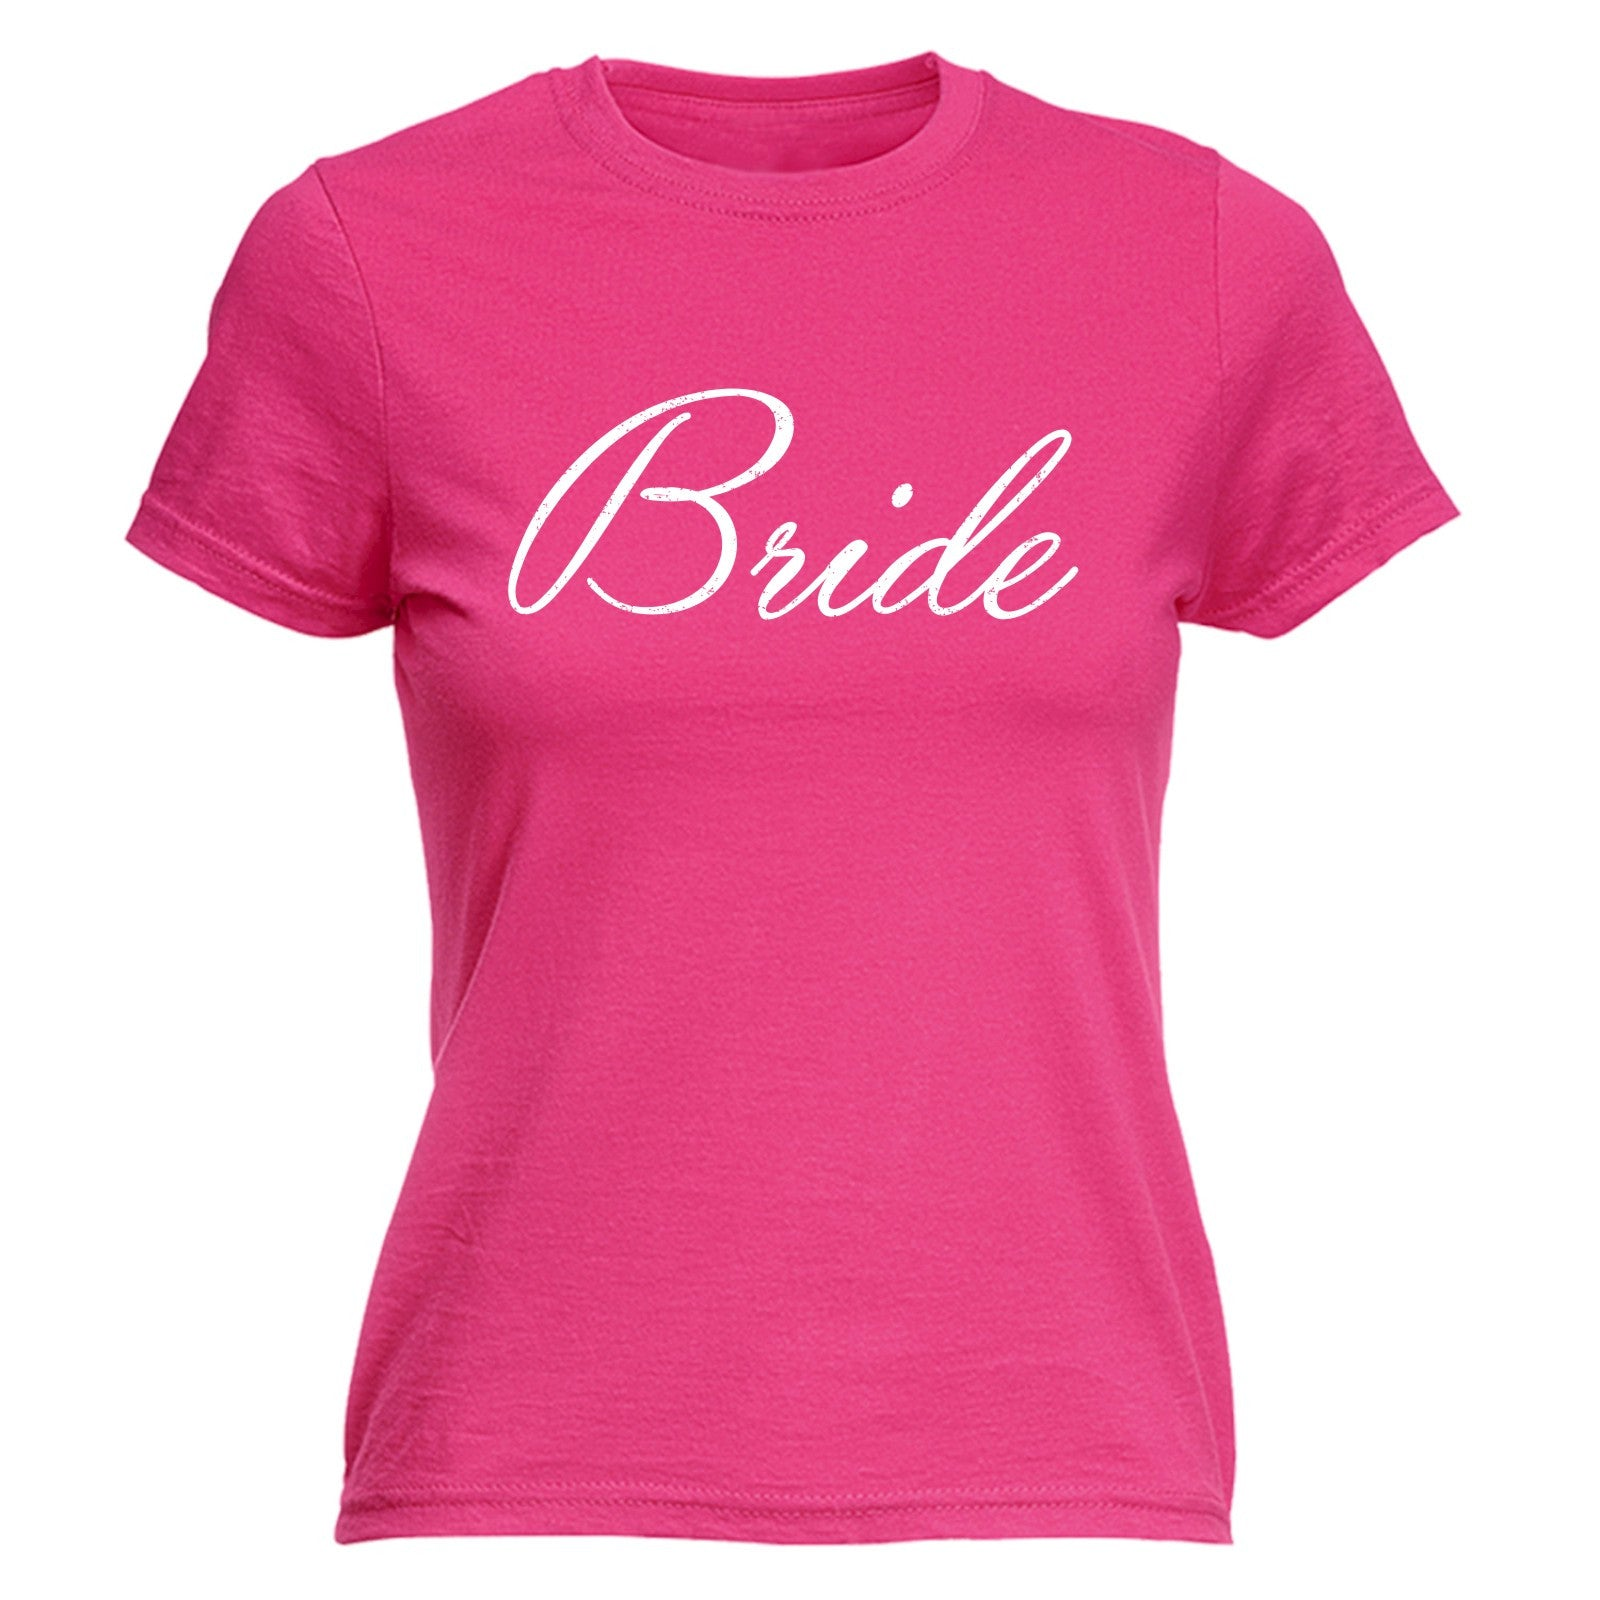 Bride womens t shirt marriage wedding hen night party soon for Novelty bride wedding dress t shirt